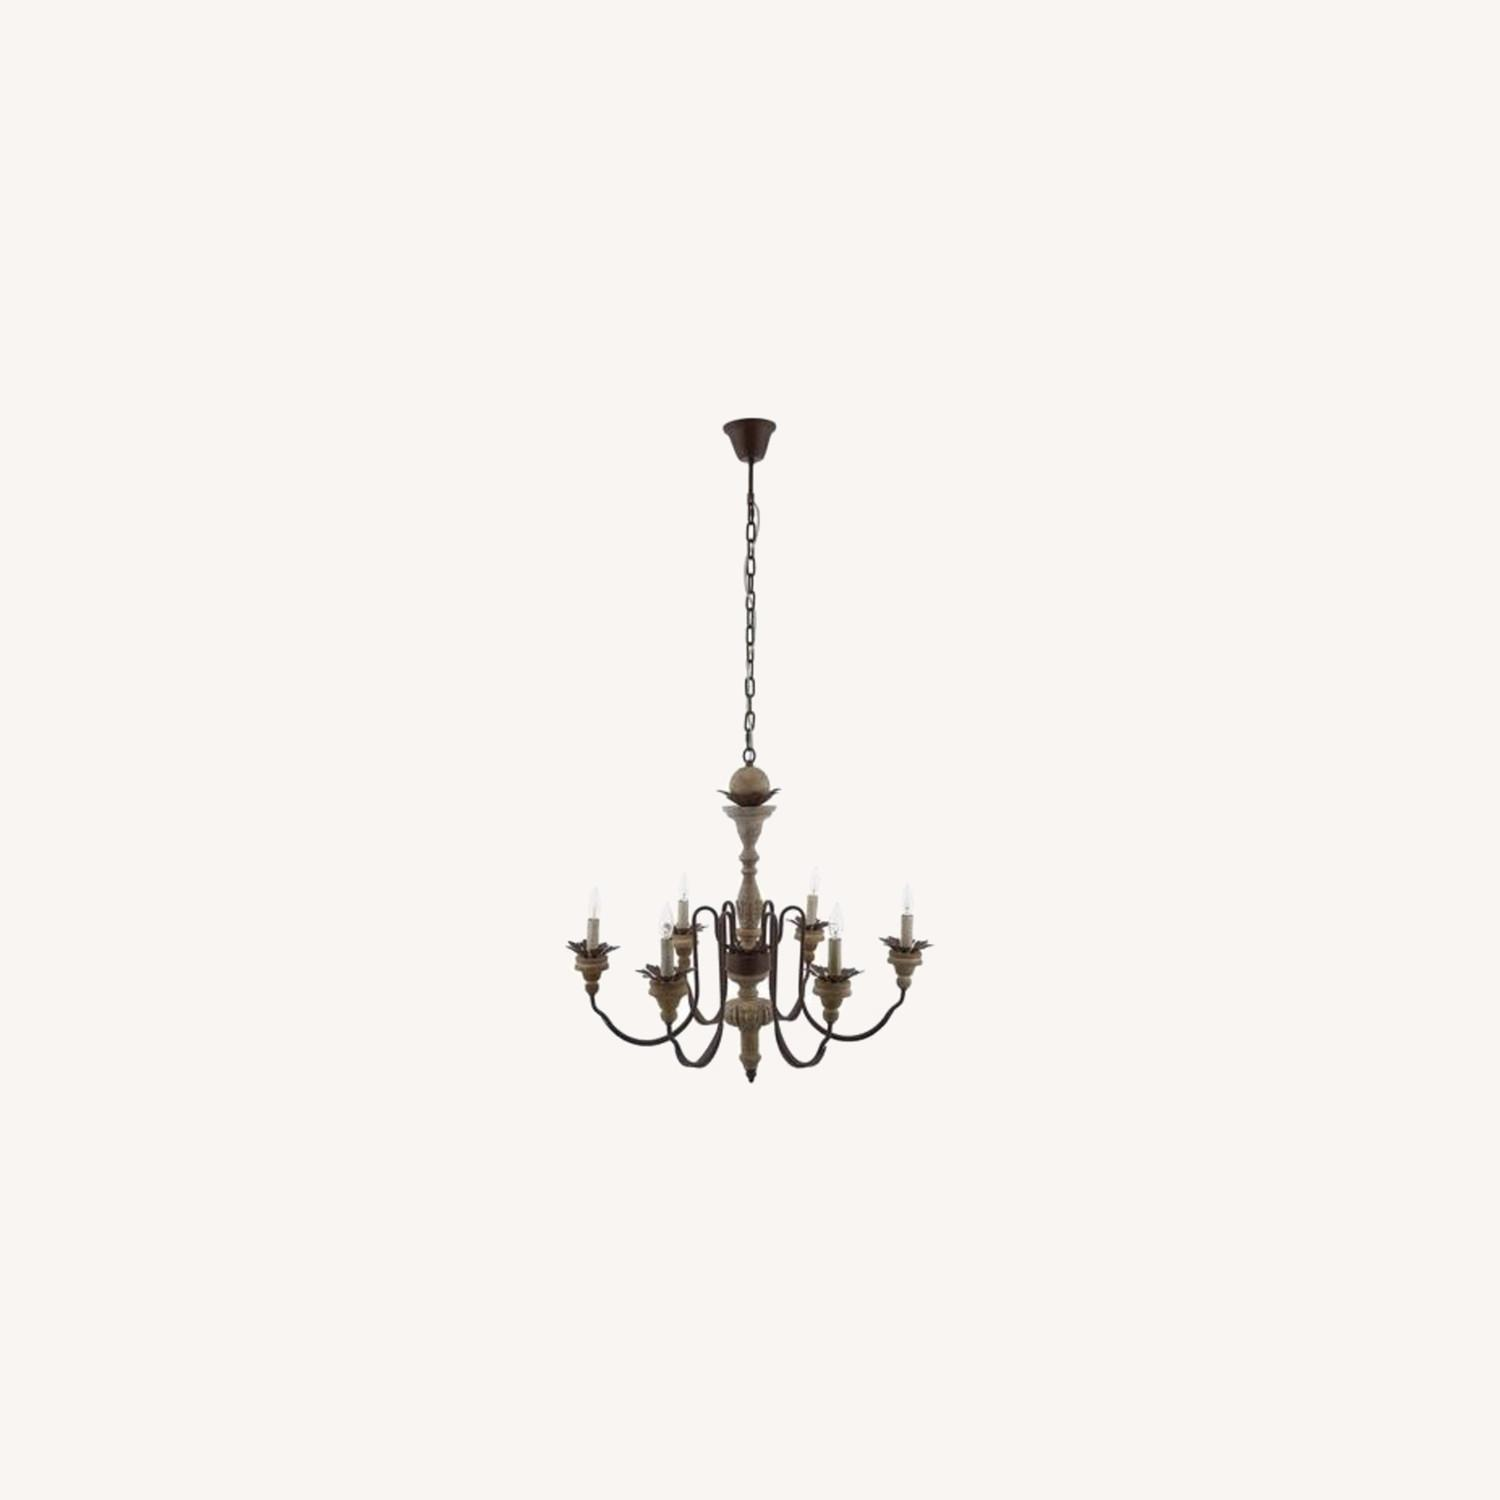 Vintage French Chandelier In Antique Metal Arms - image-4